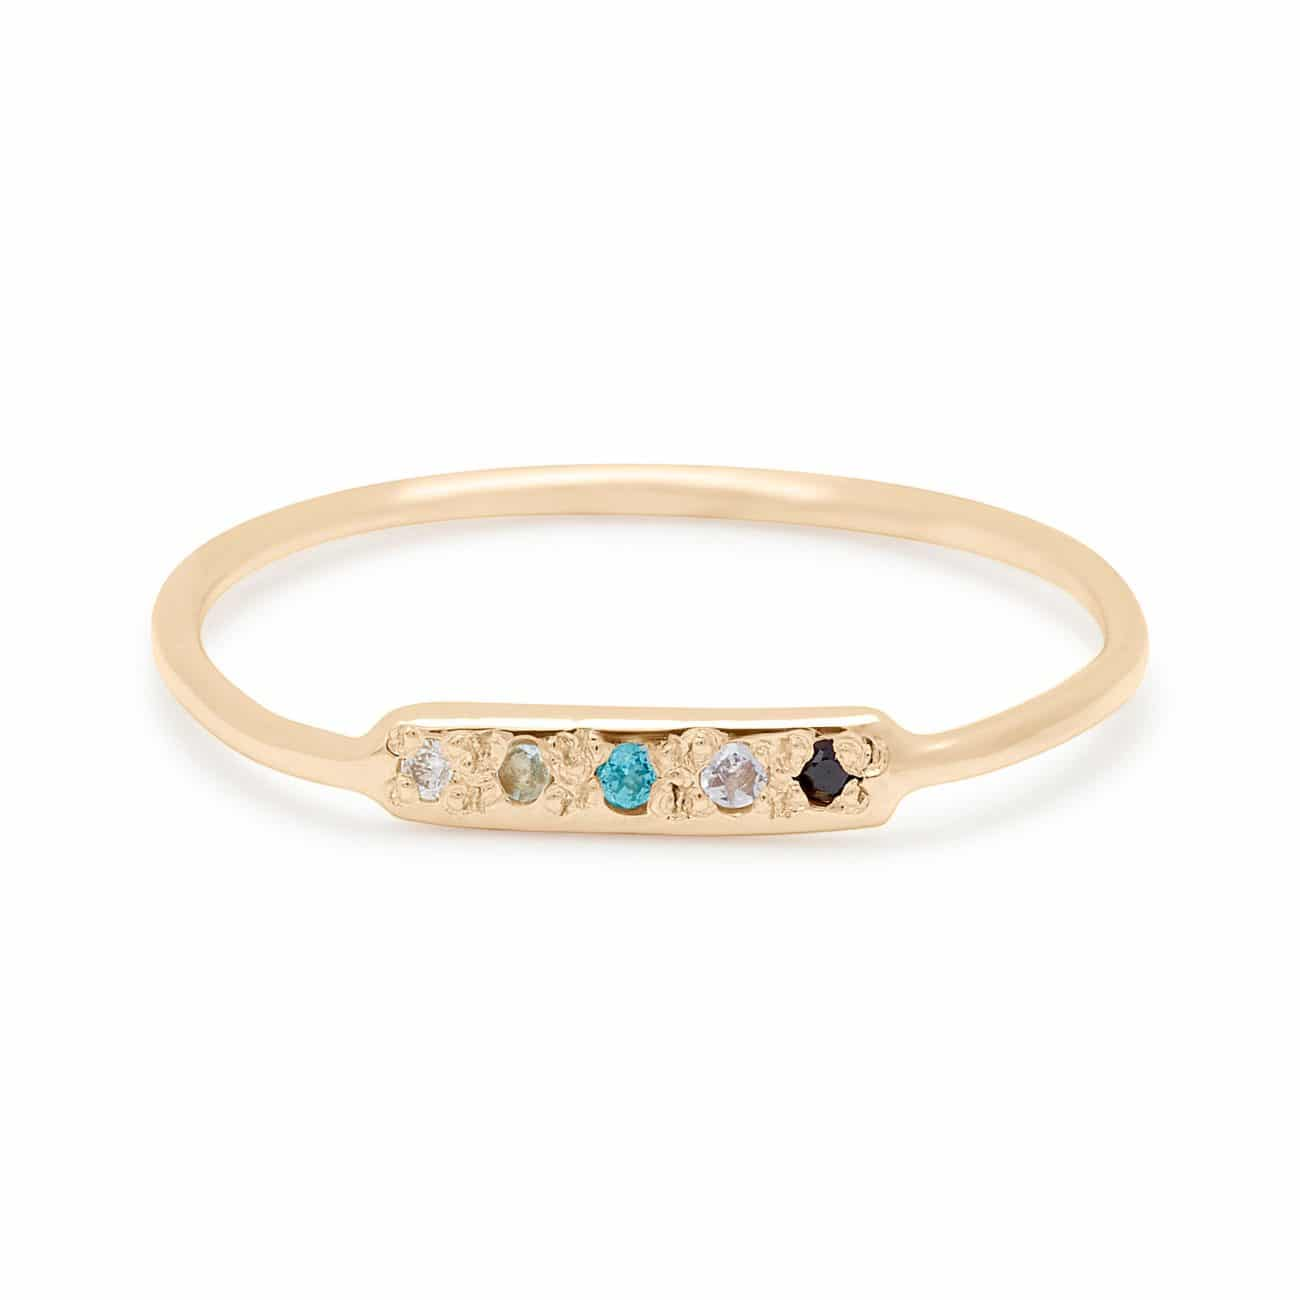 Skinny Bar Ring in 14k Yellow Gold